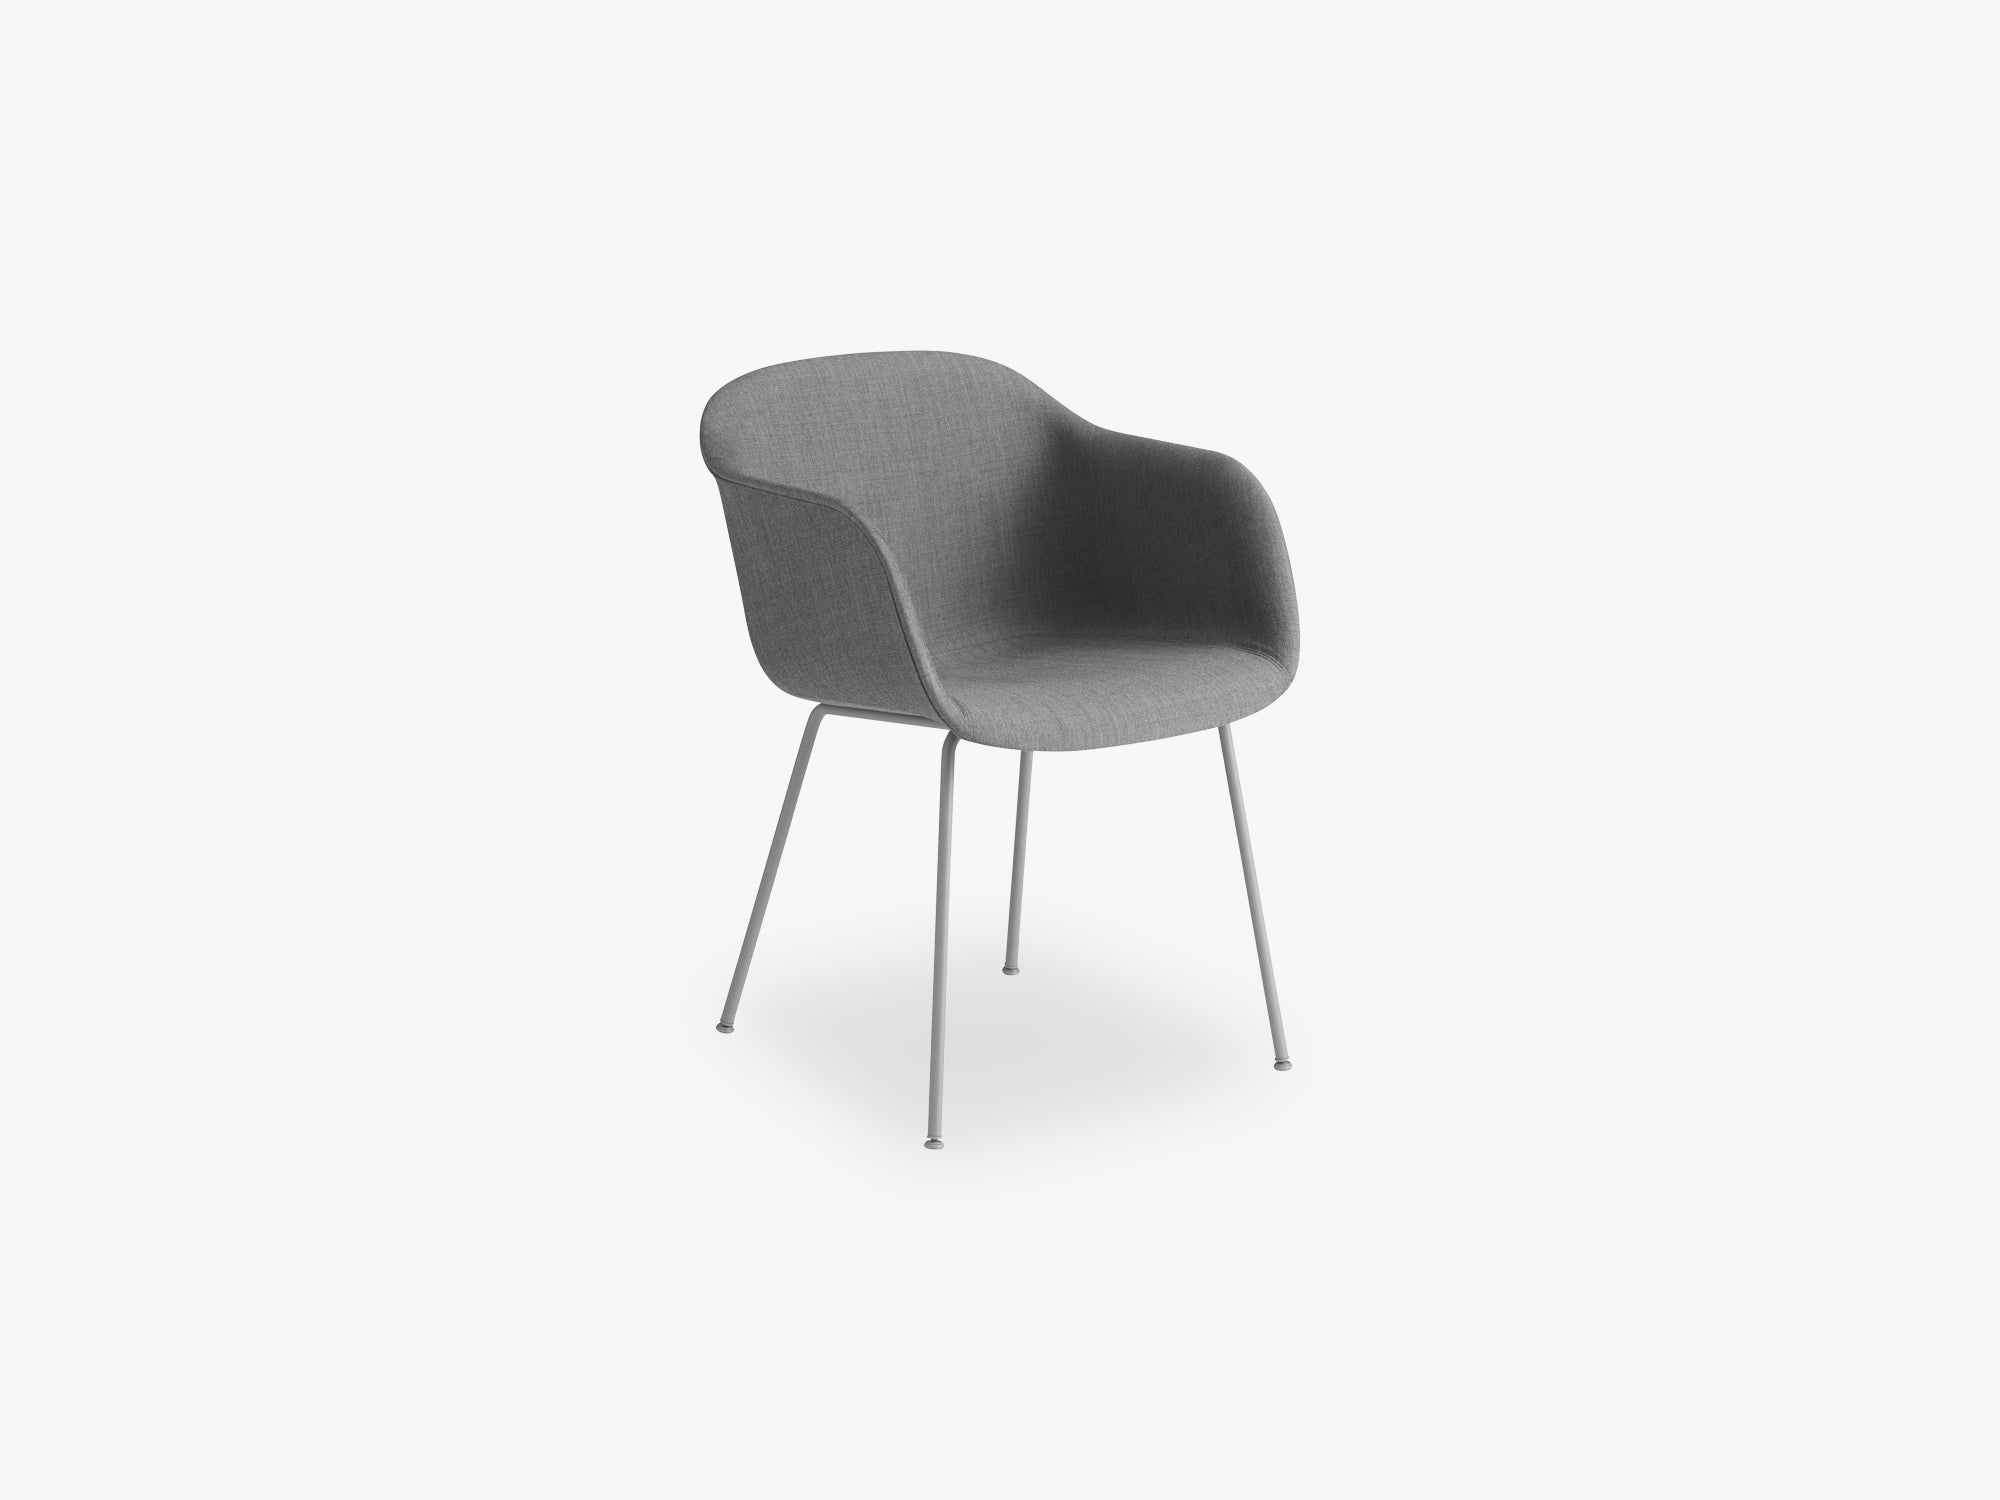 Fiber Armchair - Tube Base - Textile Shell, Remix 133 / Grey fra Muuto